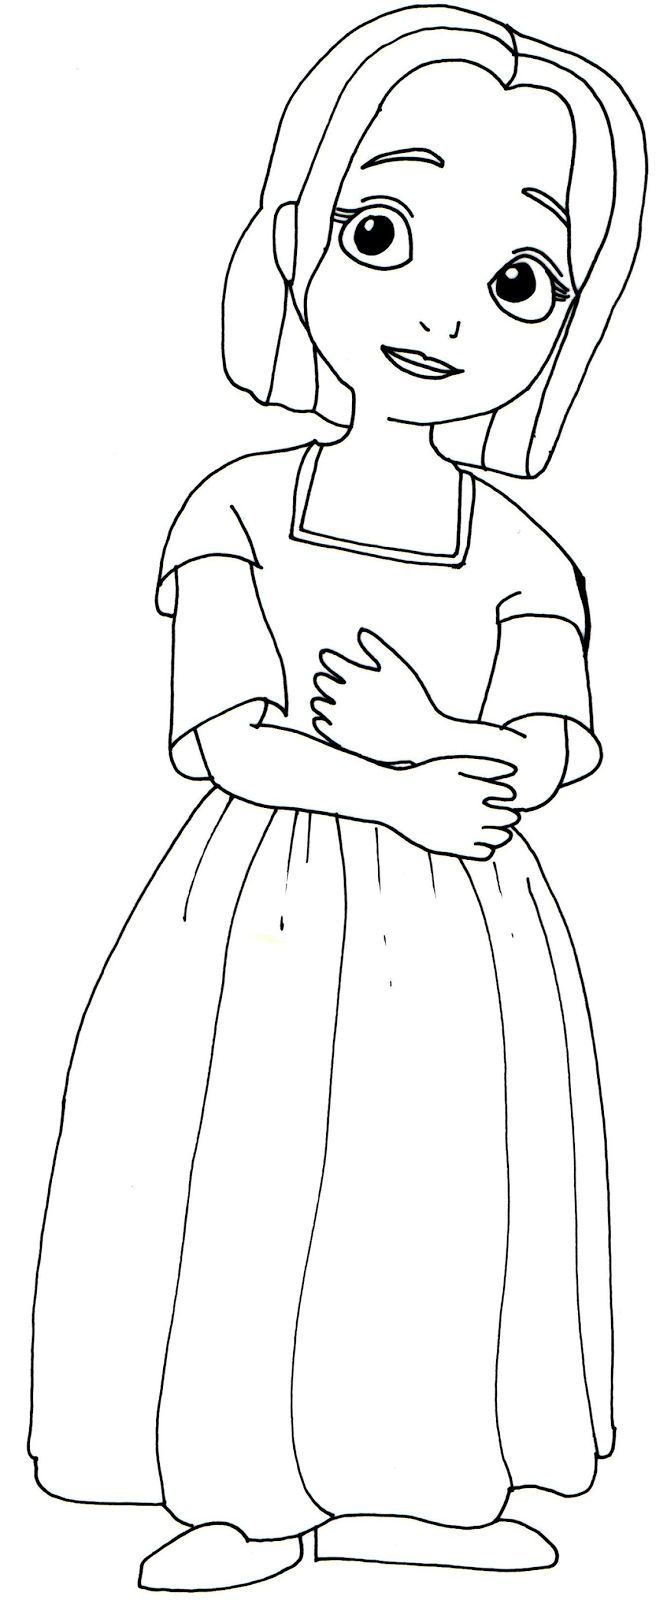 Sofia The First Coloring Pages Jade Disney Princess Coloring Pages Disney Coloring Pages Printables Mermaid Coloring Pages